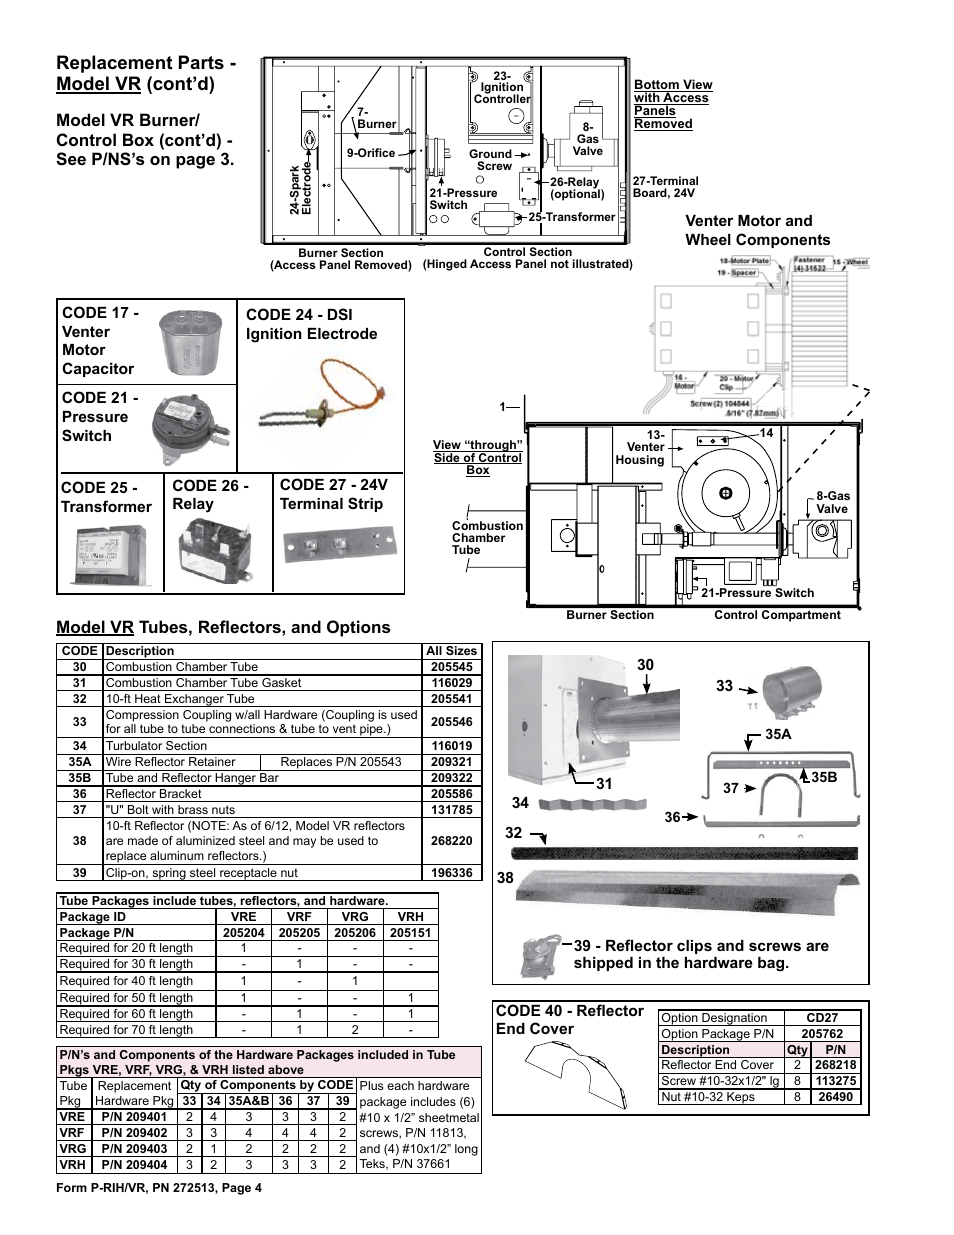 Awesome Reznor Wiring Diagram Mold - Everything You Need to Know ...